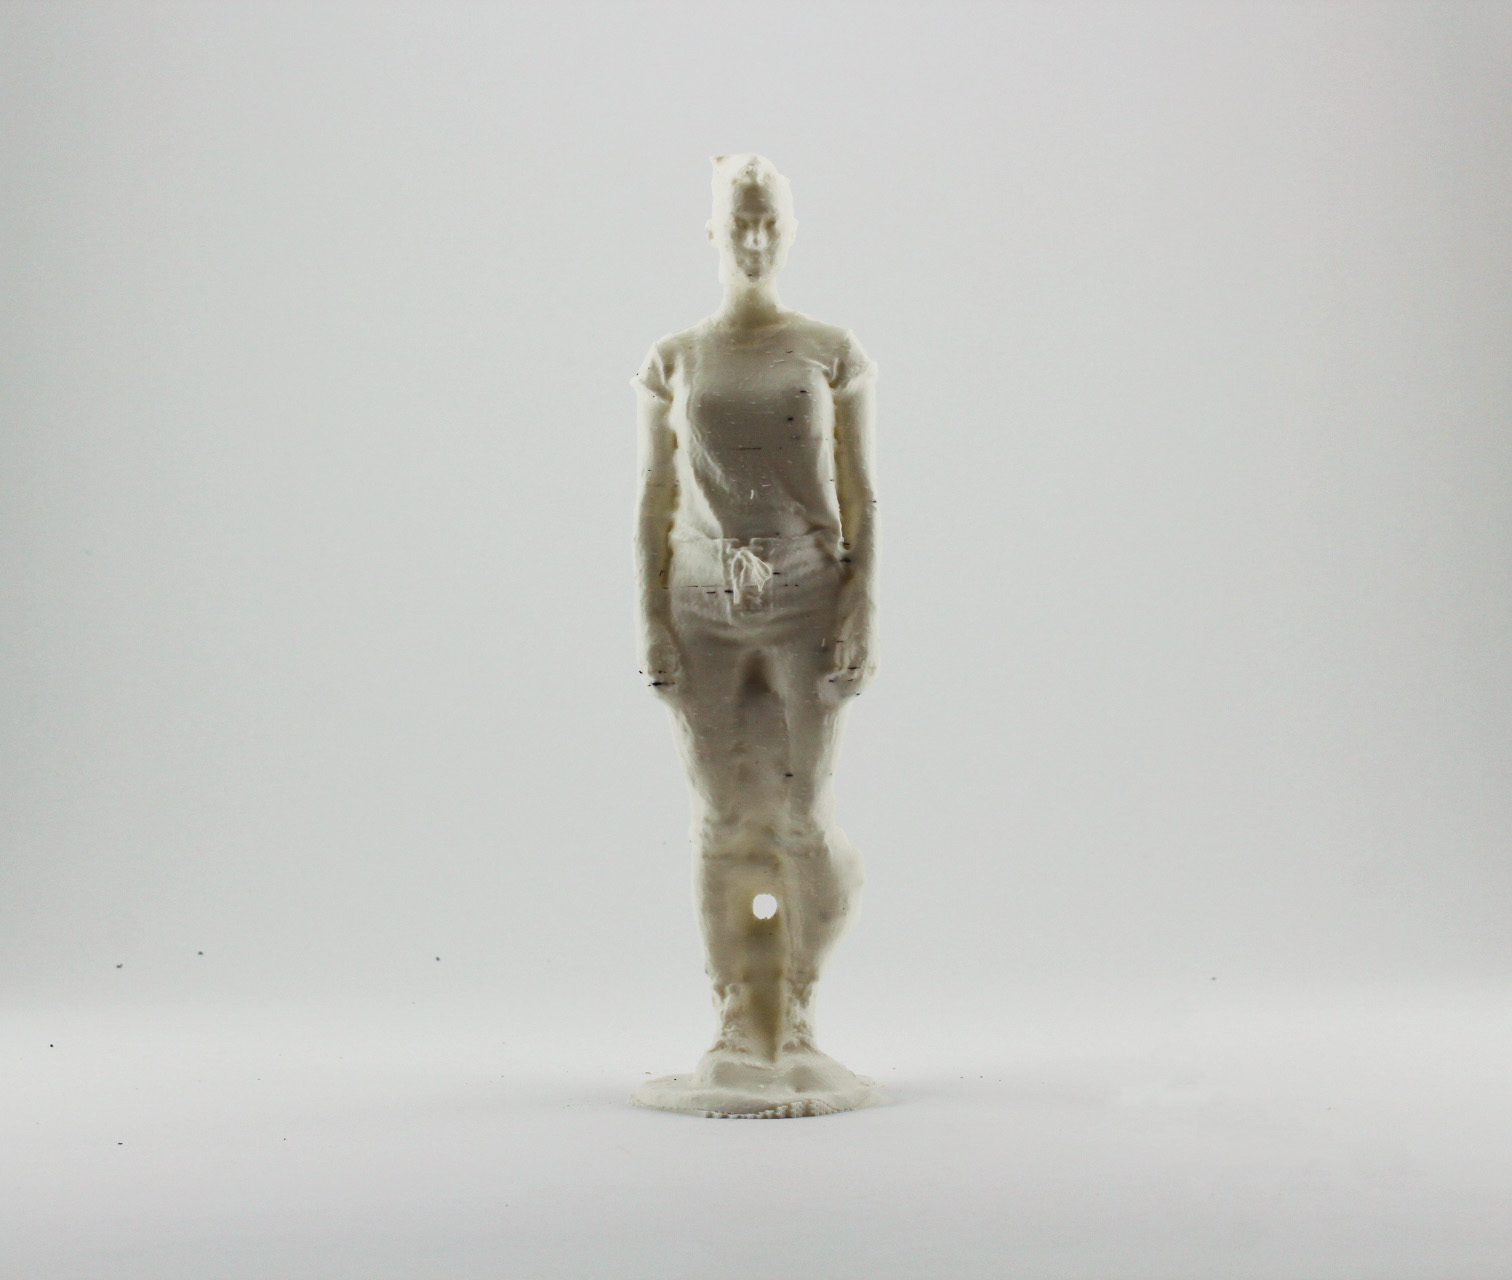 blank, 2019  digital composite 3D printed with PLA filament